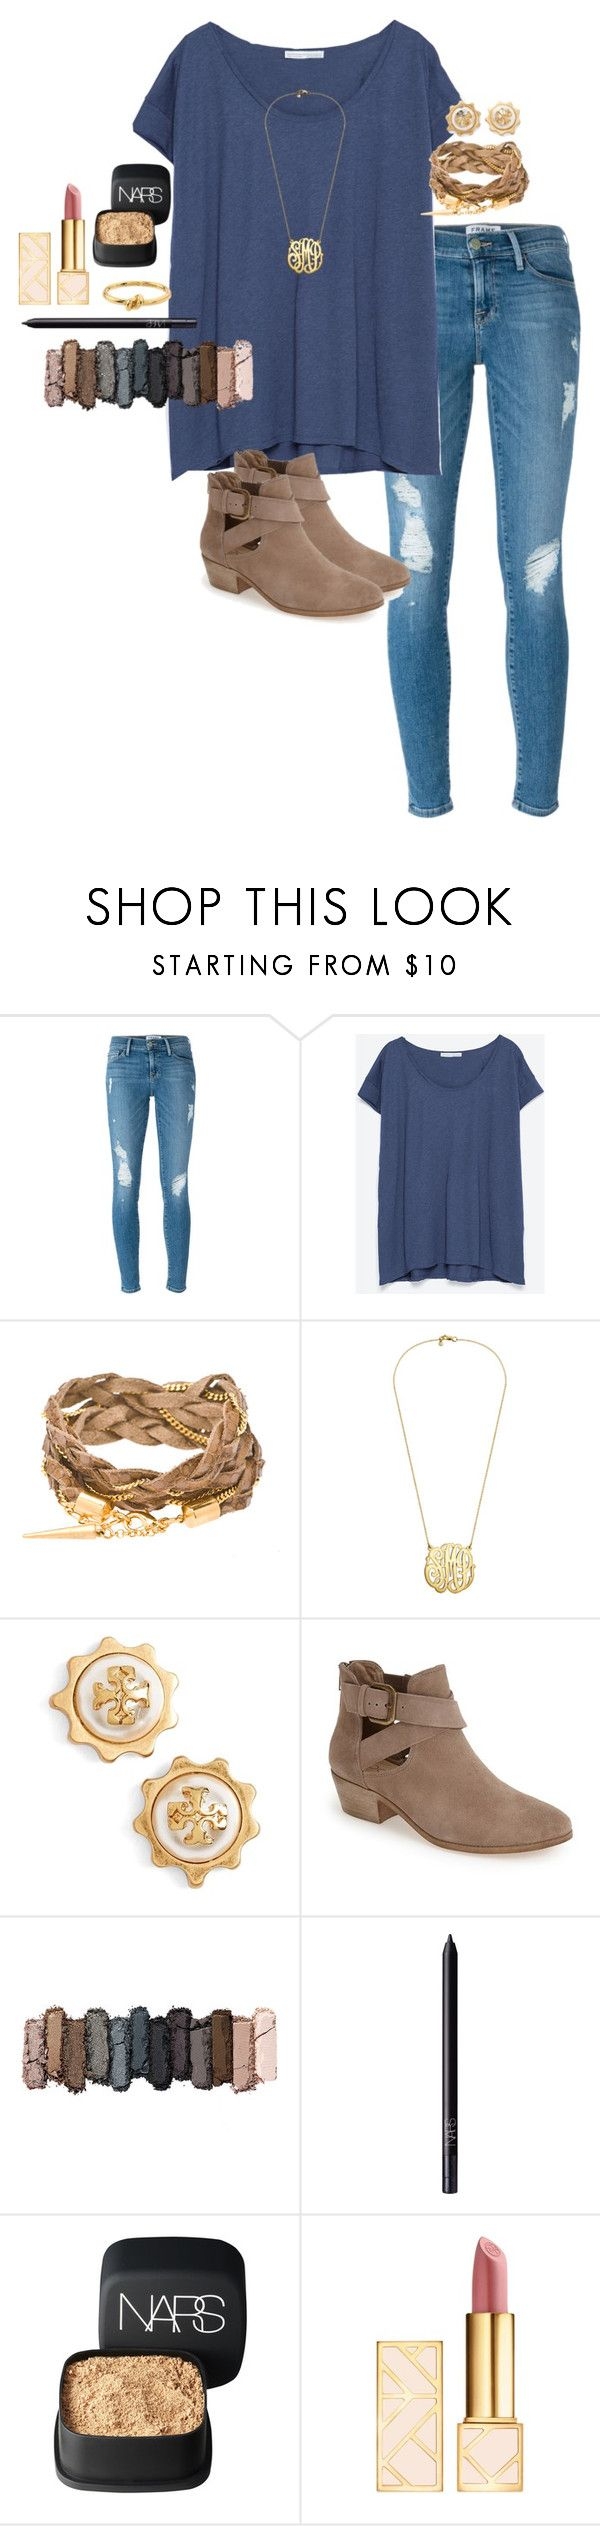 """Almost to 700!!!"" by anna-watson00 ❤ liked on Polyvore featuring Frame Denim, Zara, Tory Burch, Sole Society, Urban Decay, NARS Cosmetics and Kate Spade"